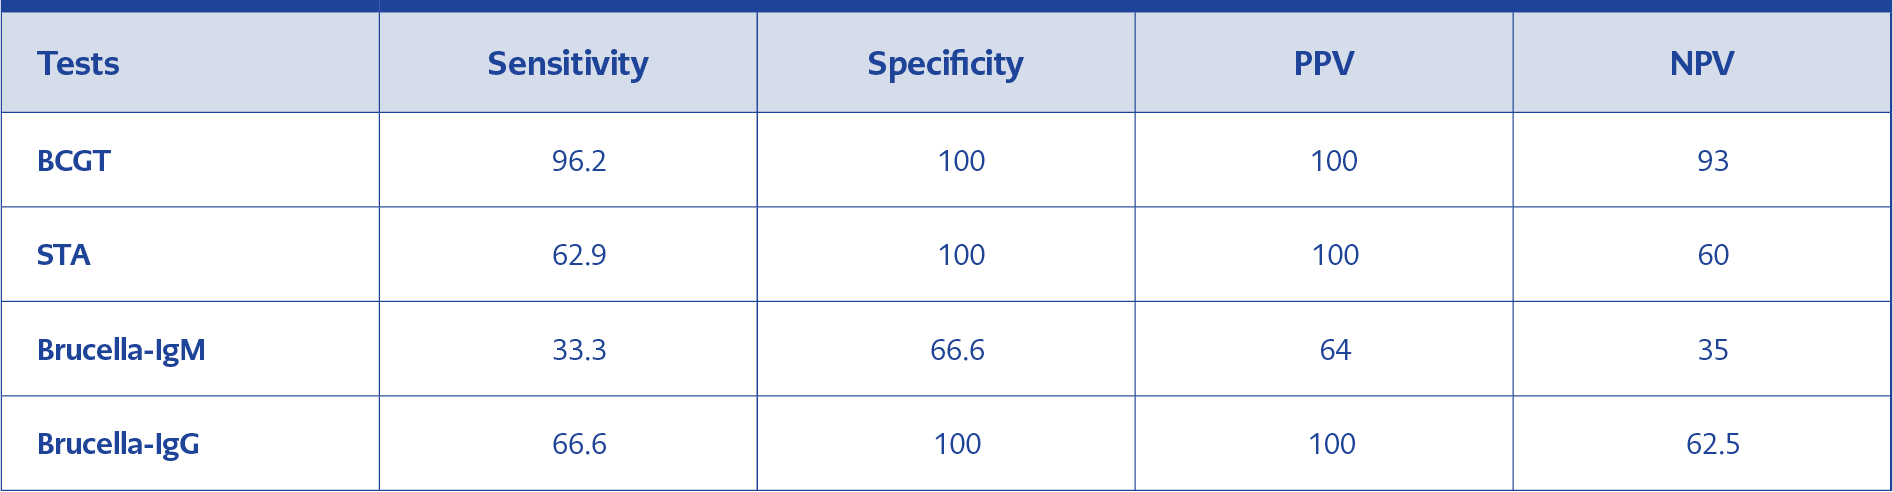 <strong>Table 3.</strong>Rates of Sensitivity, Specificity, PPV and NPV of the tests used in this study (%).